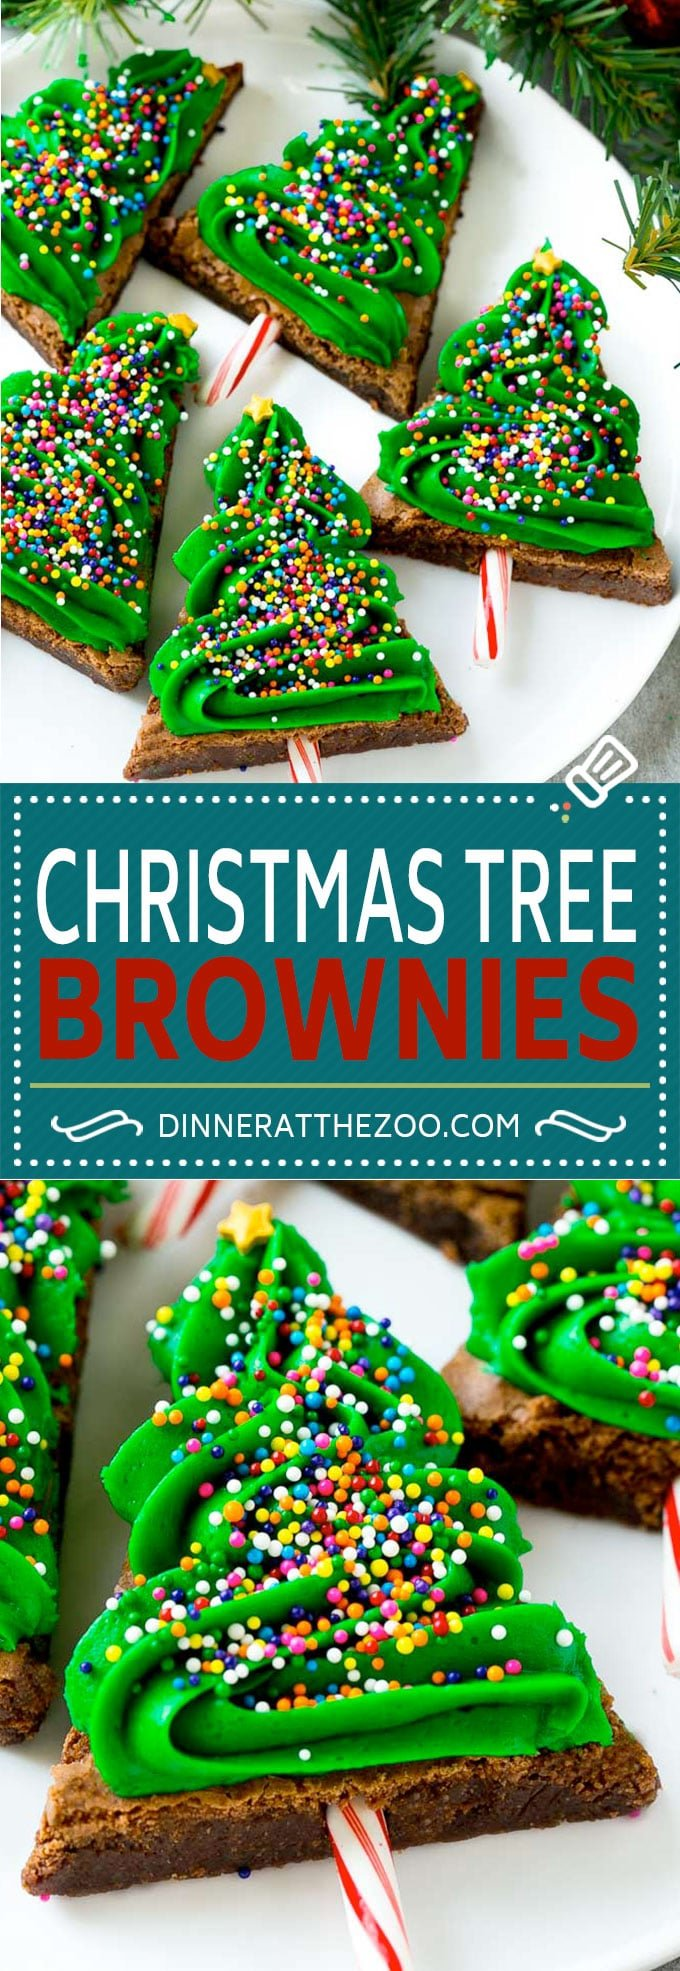 Christmas Tree Brownies | Christmas Brownies | Holiday Brownies | Christmas Tree Dessert